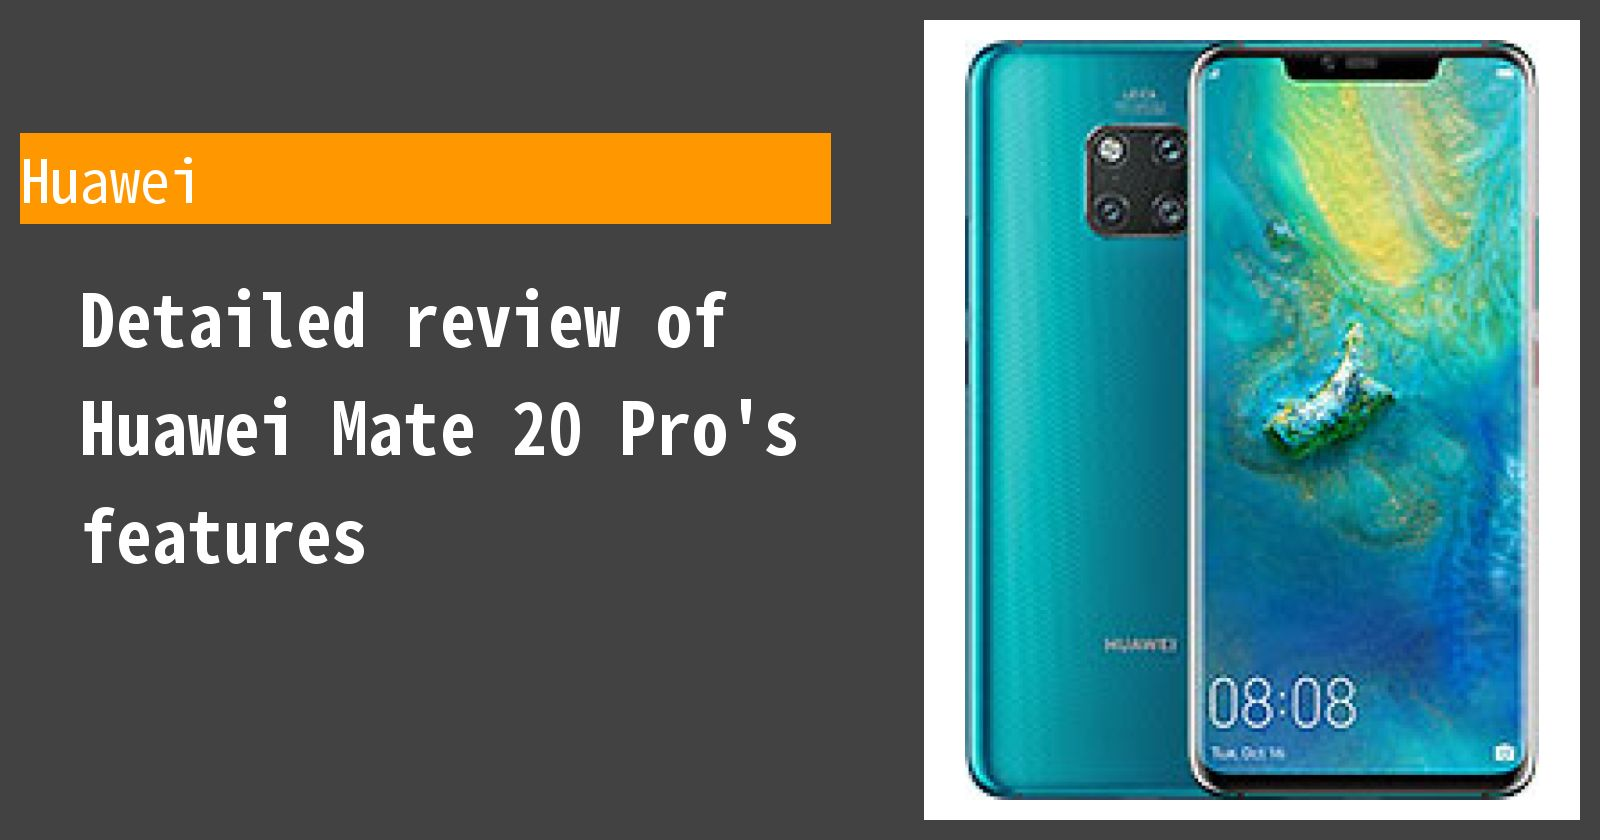 Detailed review of Huawei Mate 20 Pro's features